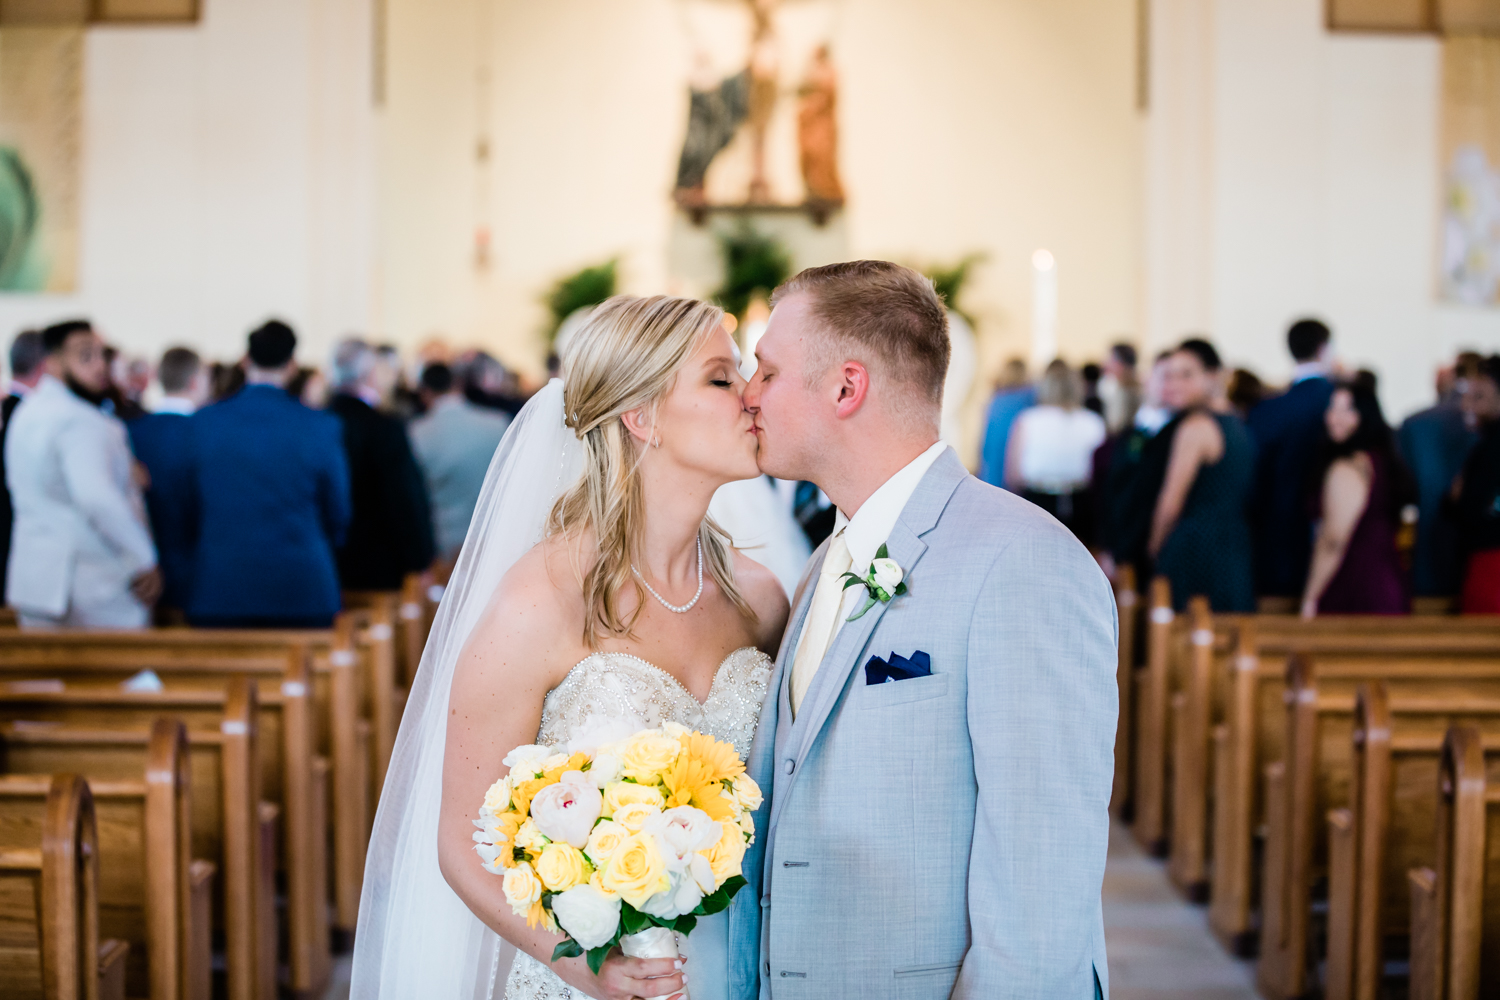 bride and groom share one last kiss before exiting the church